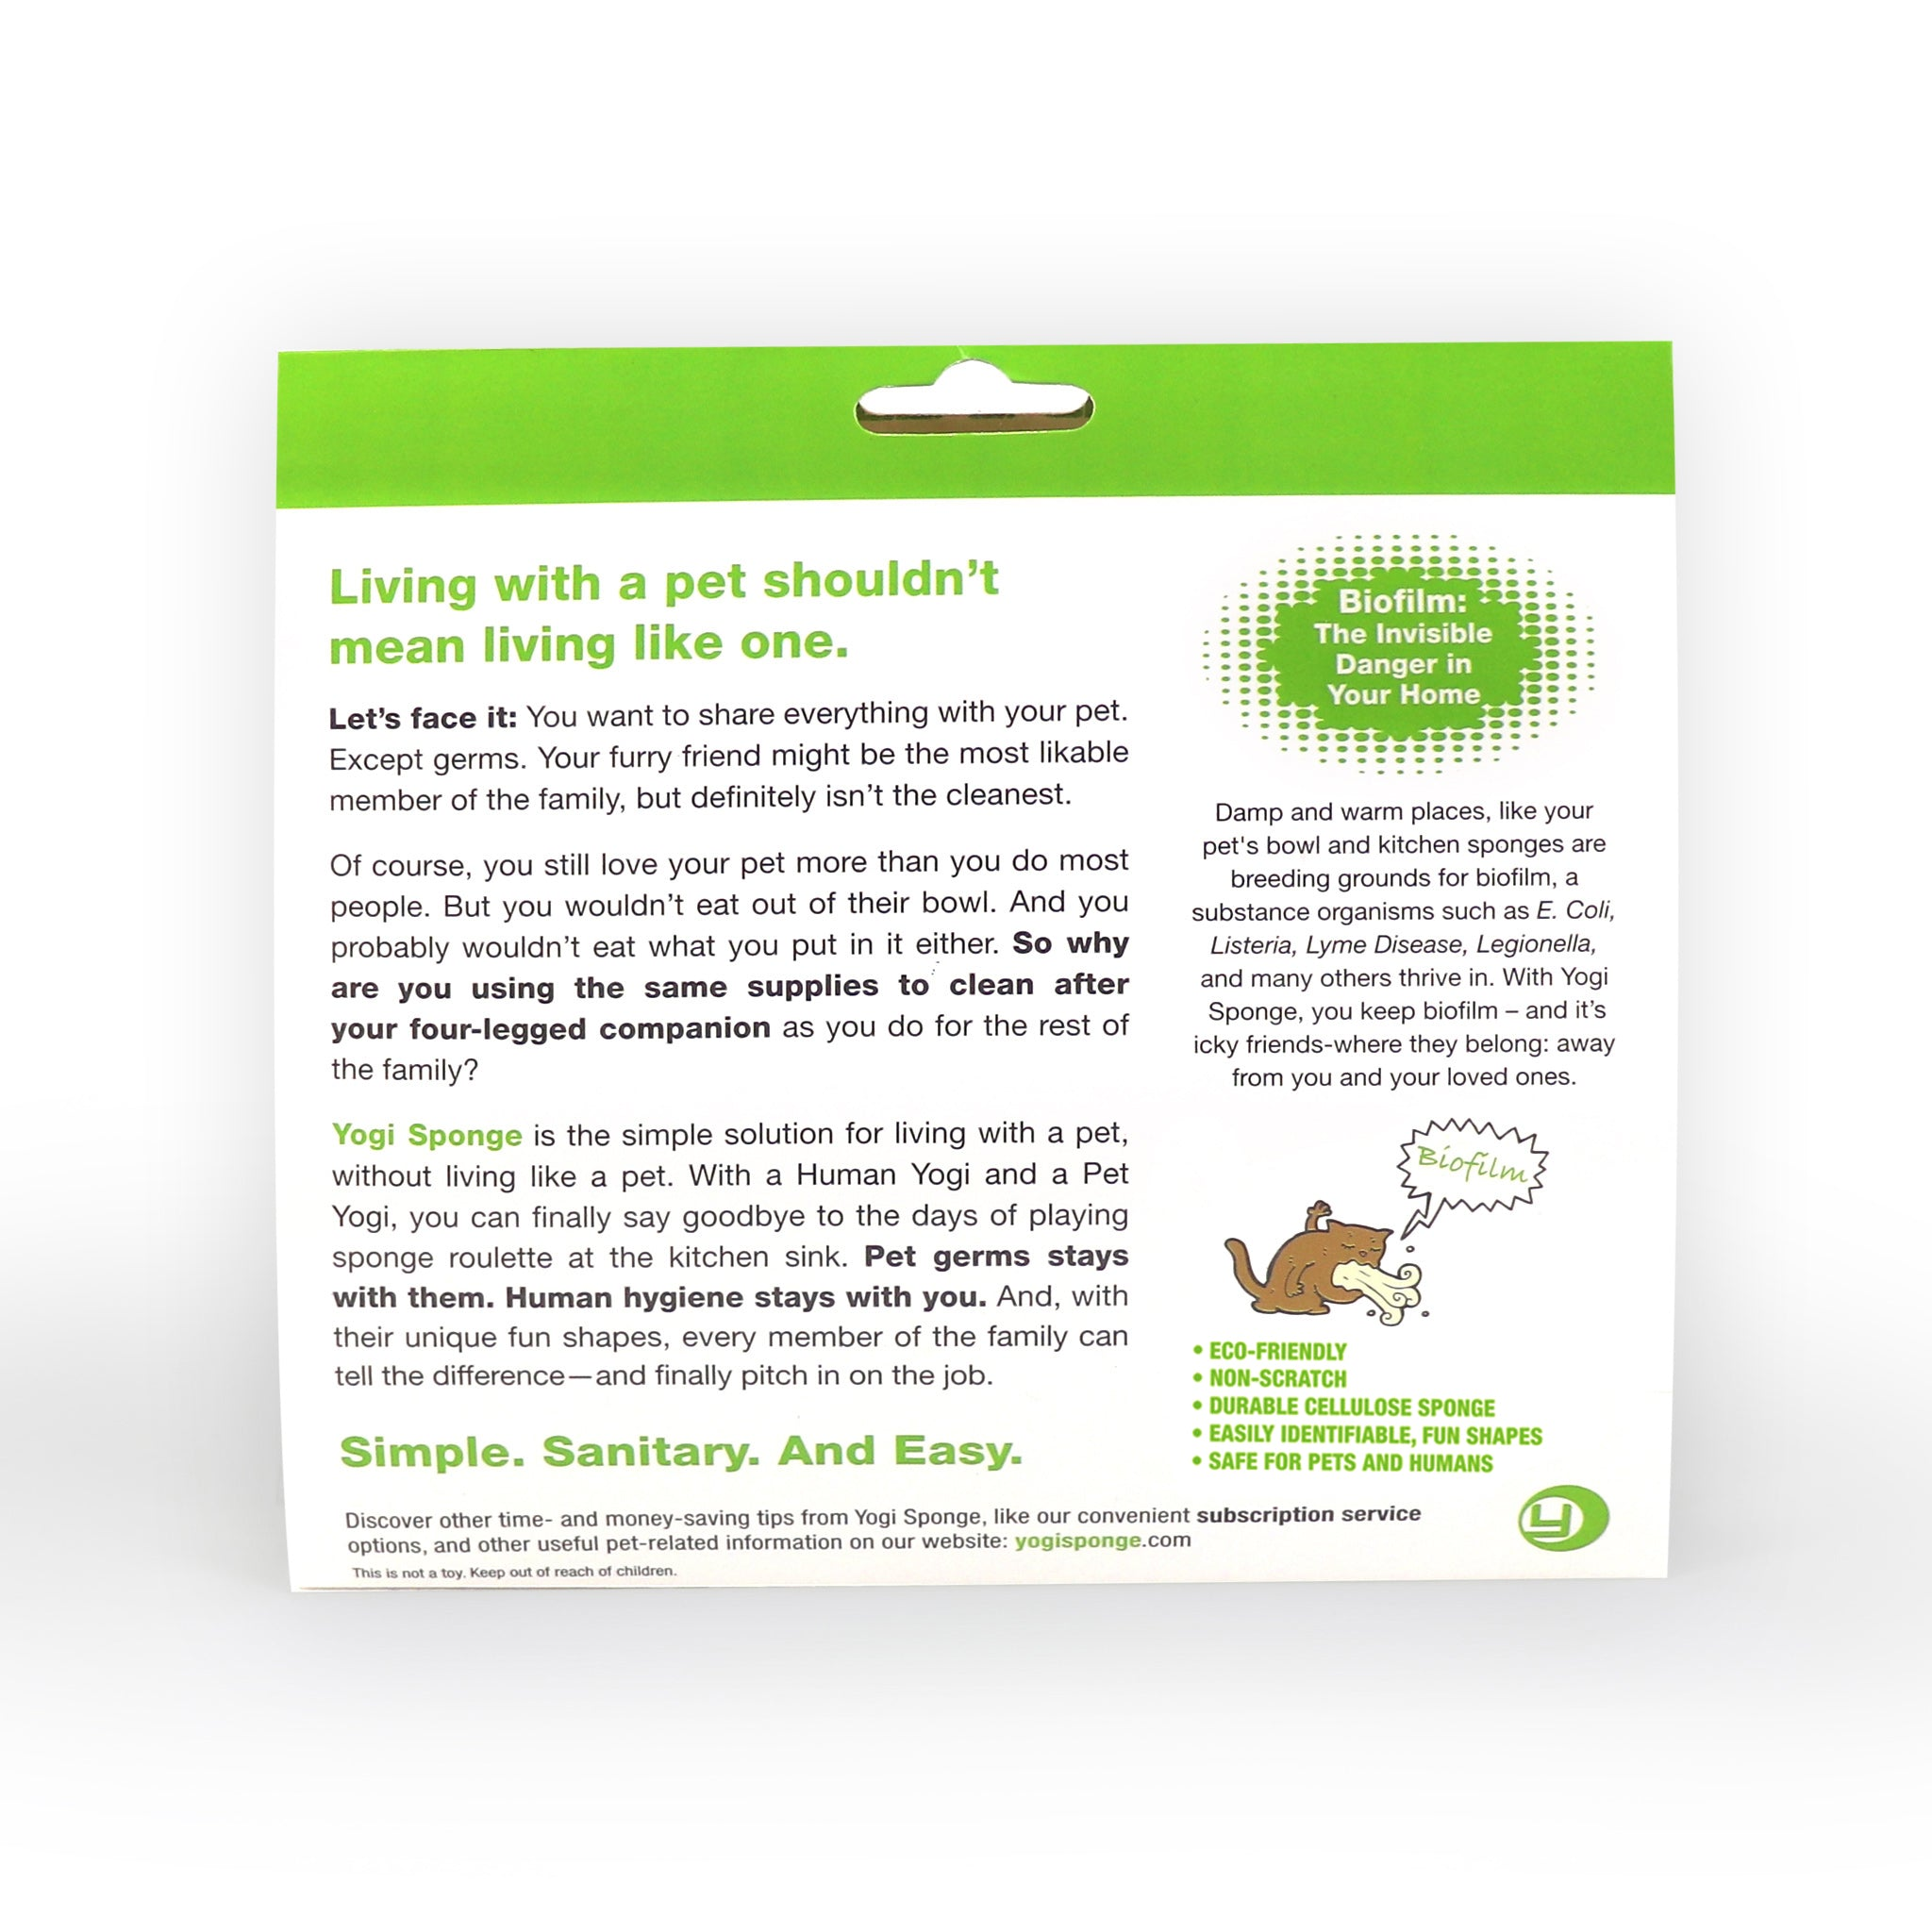 2 Packs of Yogi Sponge Human/Cat, Human/Dog